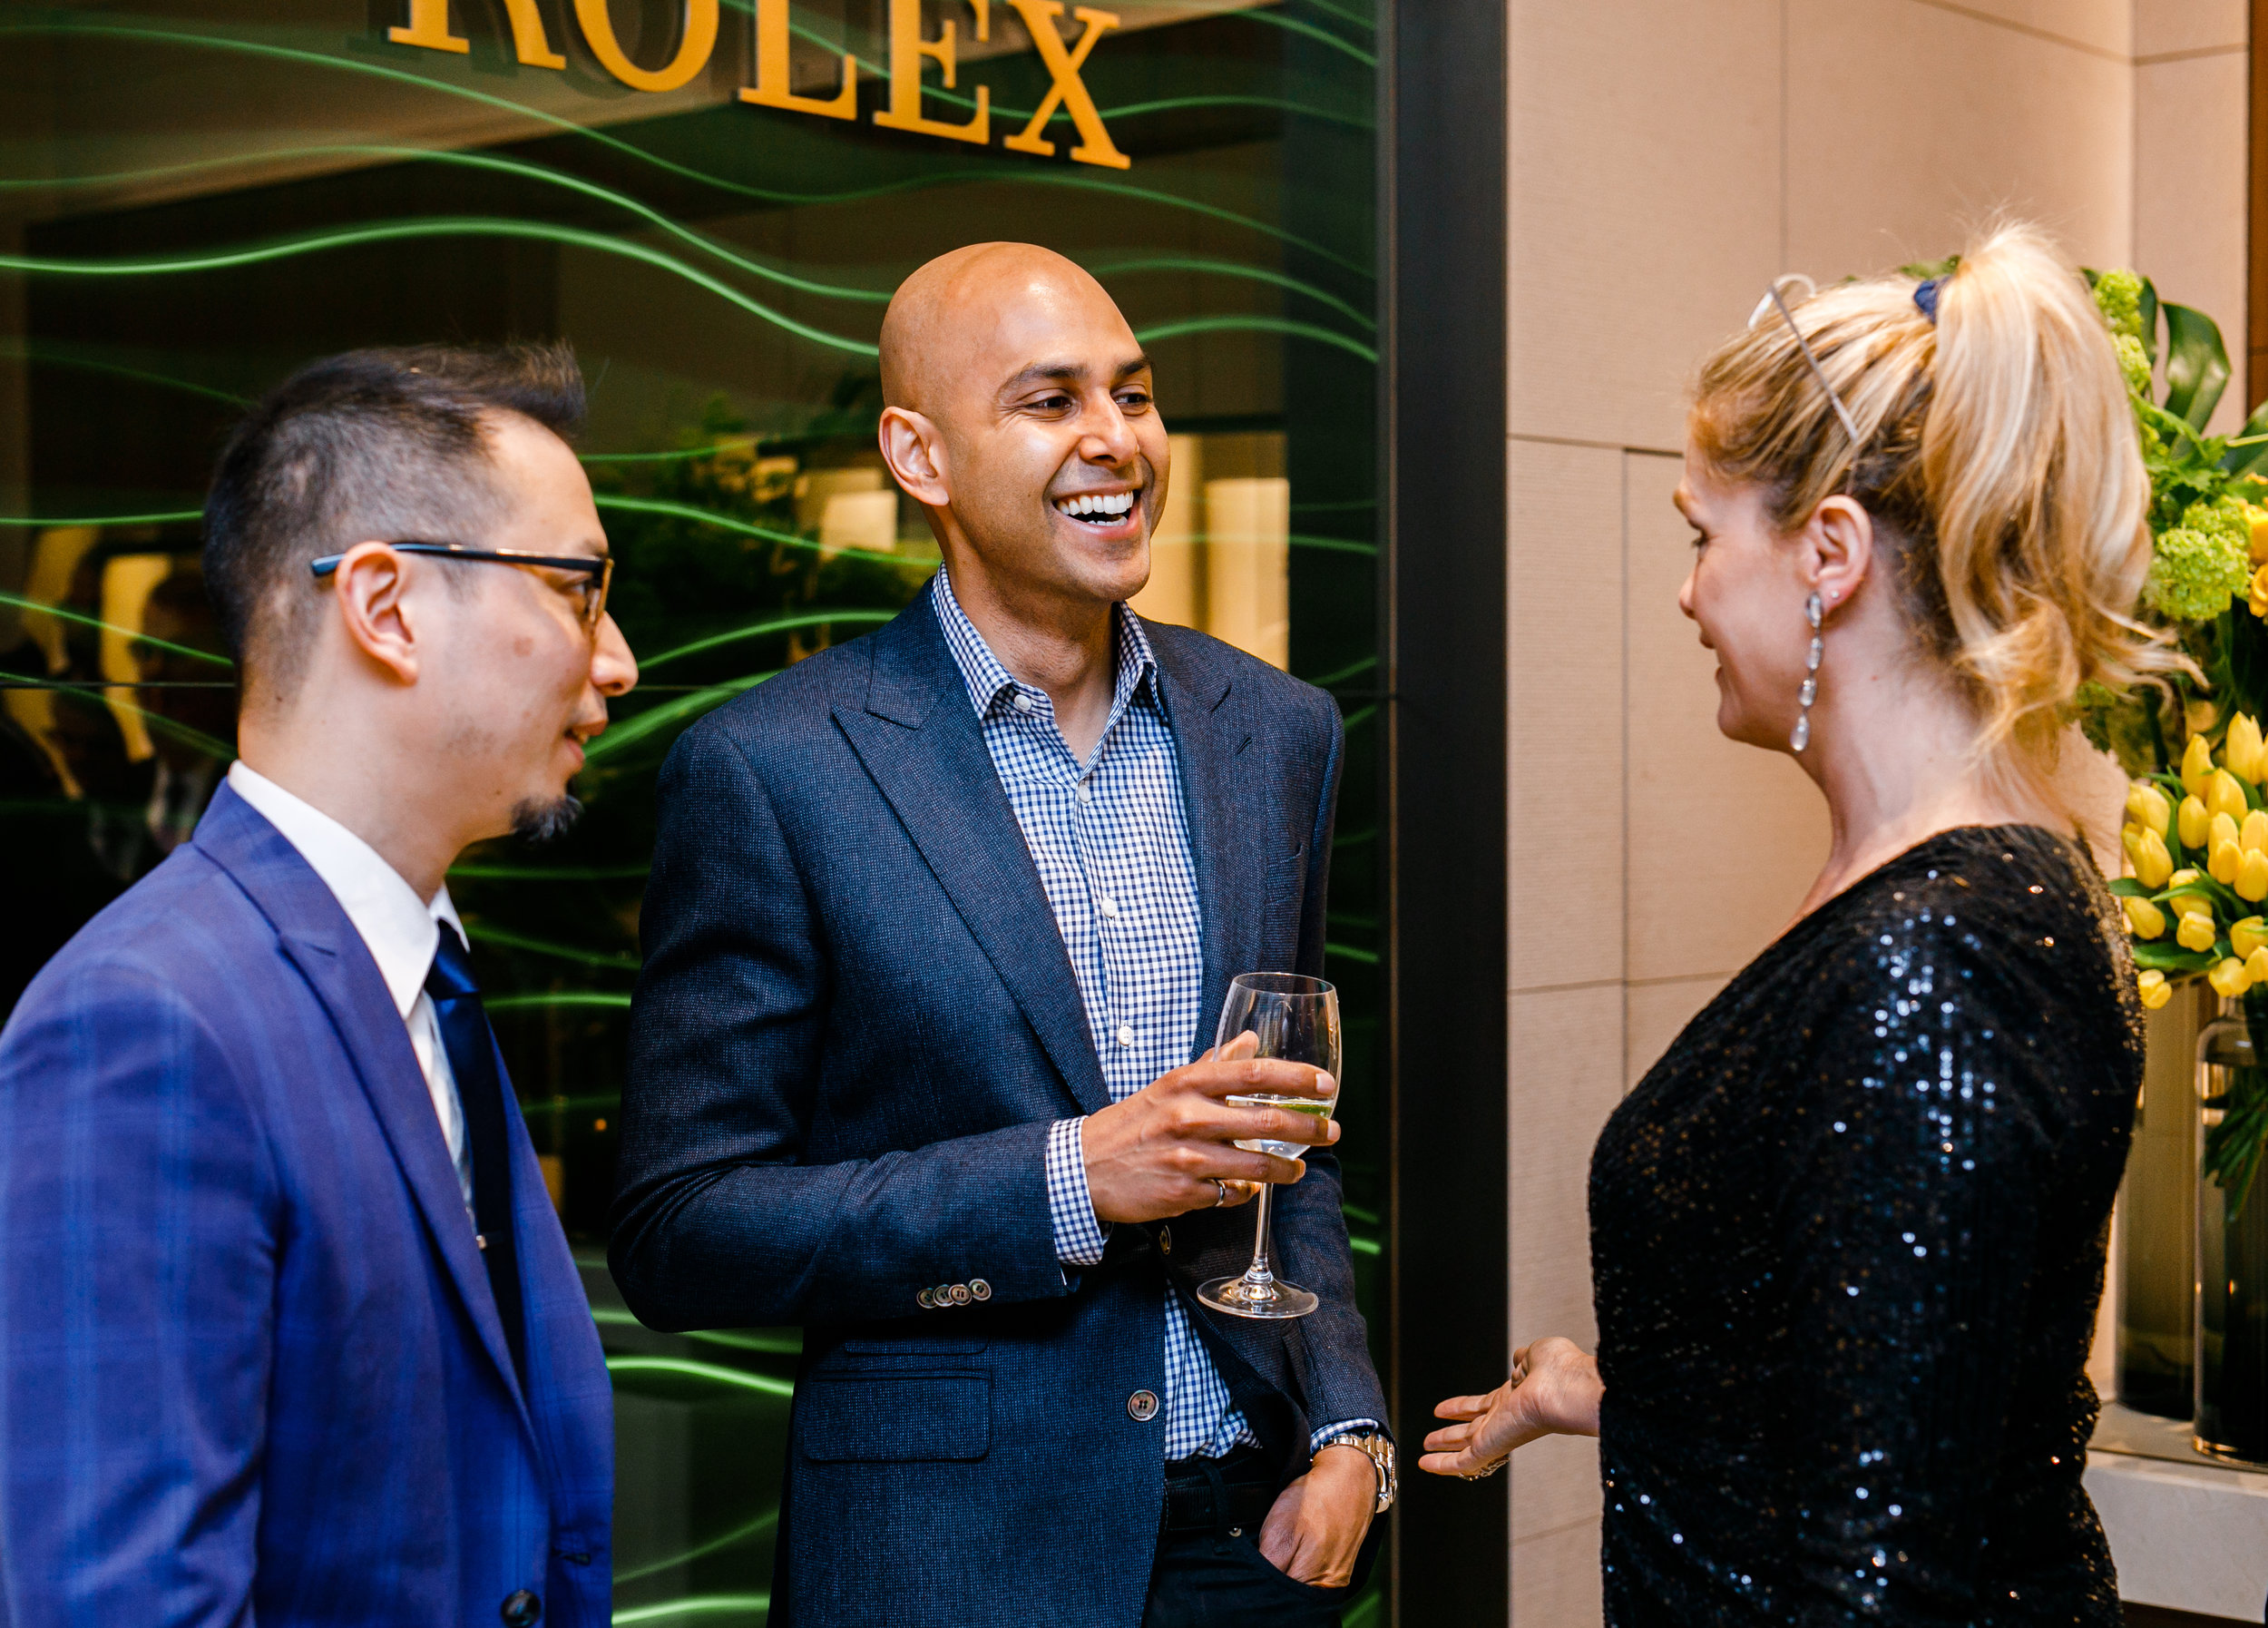 RDV-Rolex-Event-2019-HR-057-5211.JPG